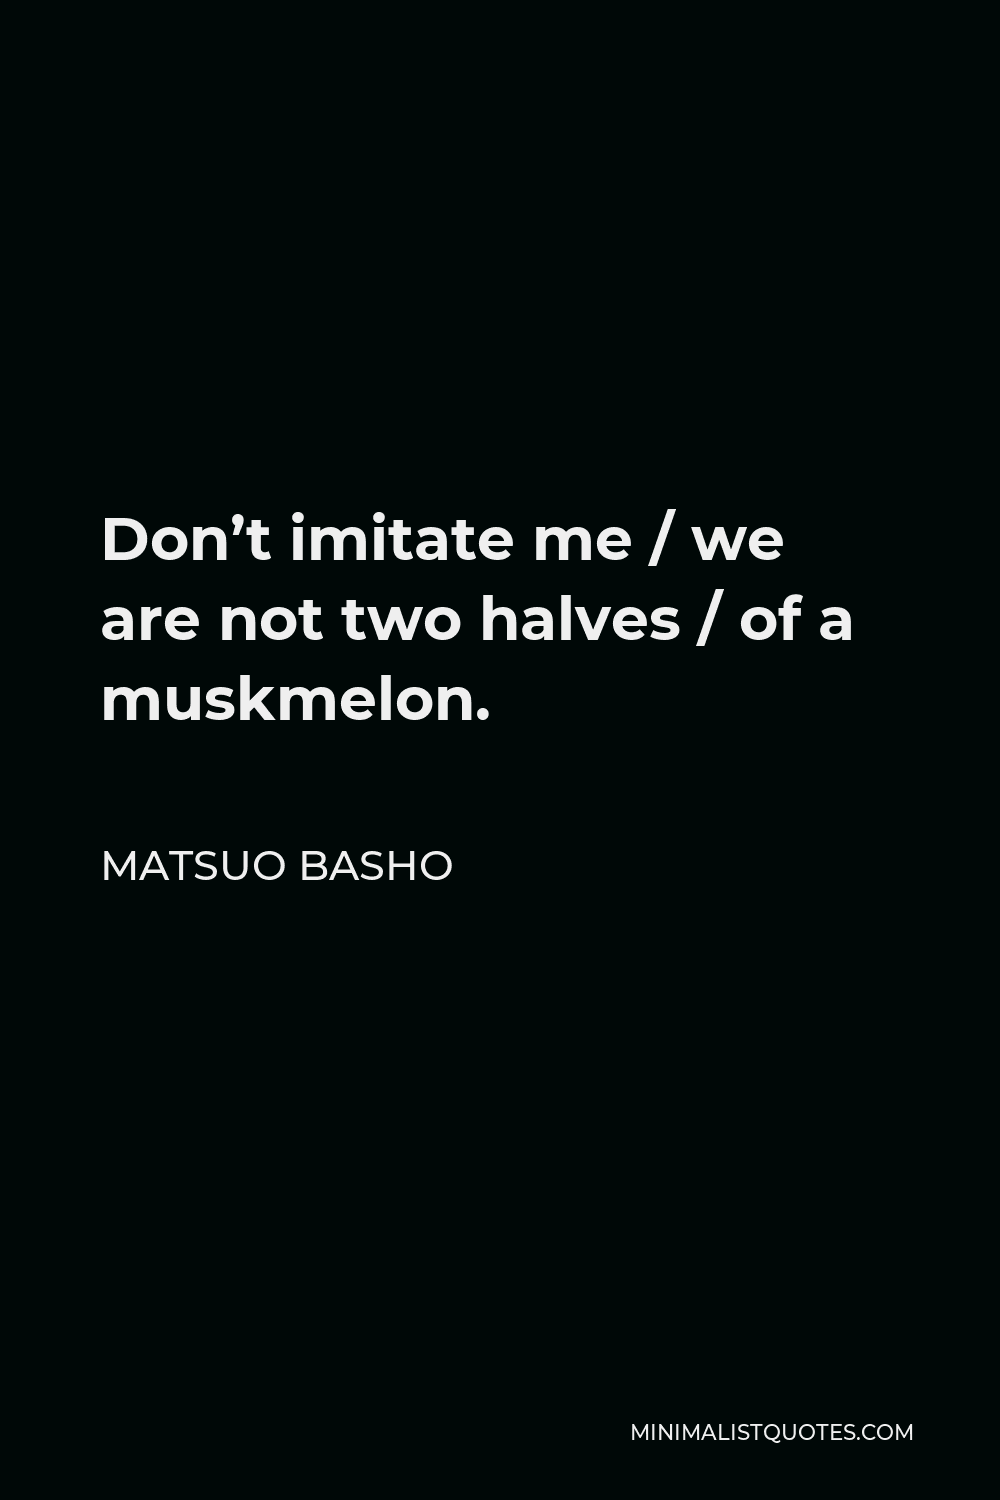 Matsuo Basho Quote - Don't imitate me / we are not two halves / of a muskmelon.